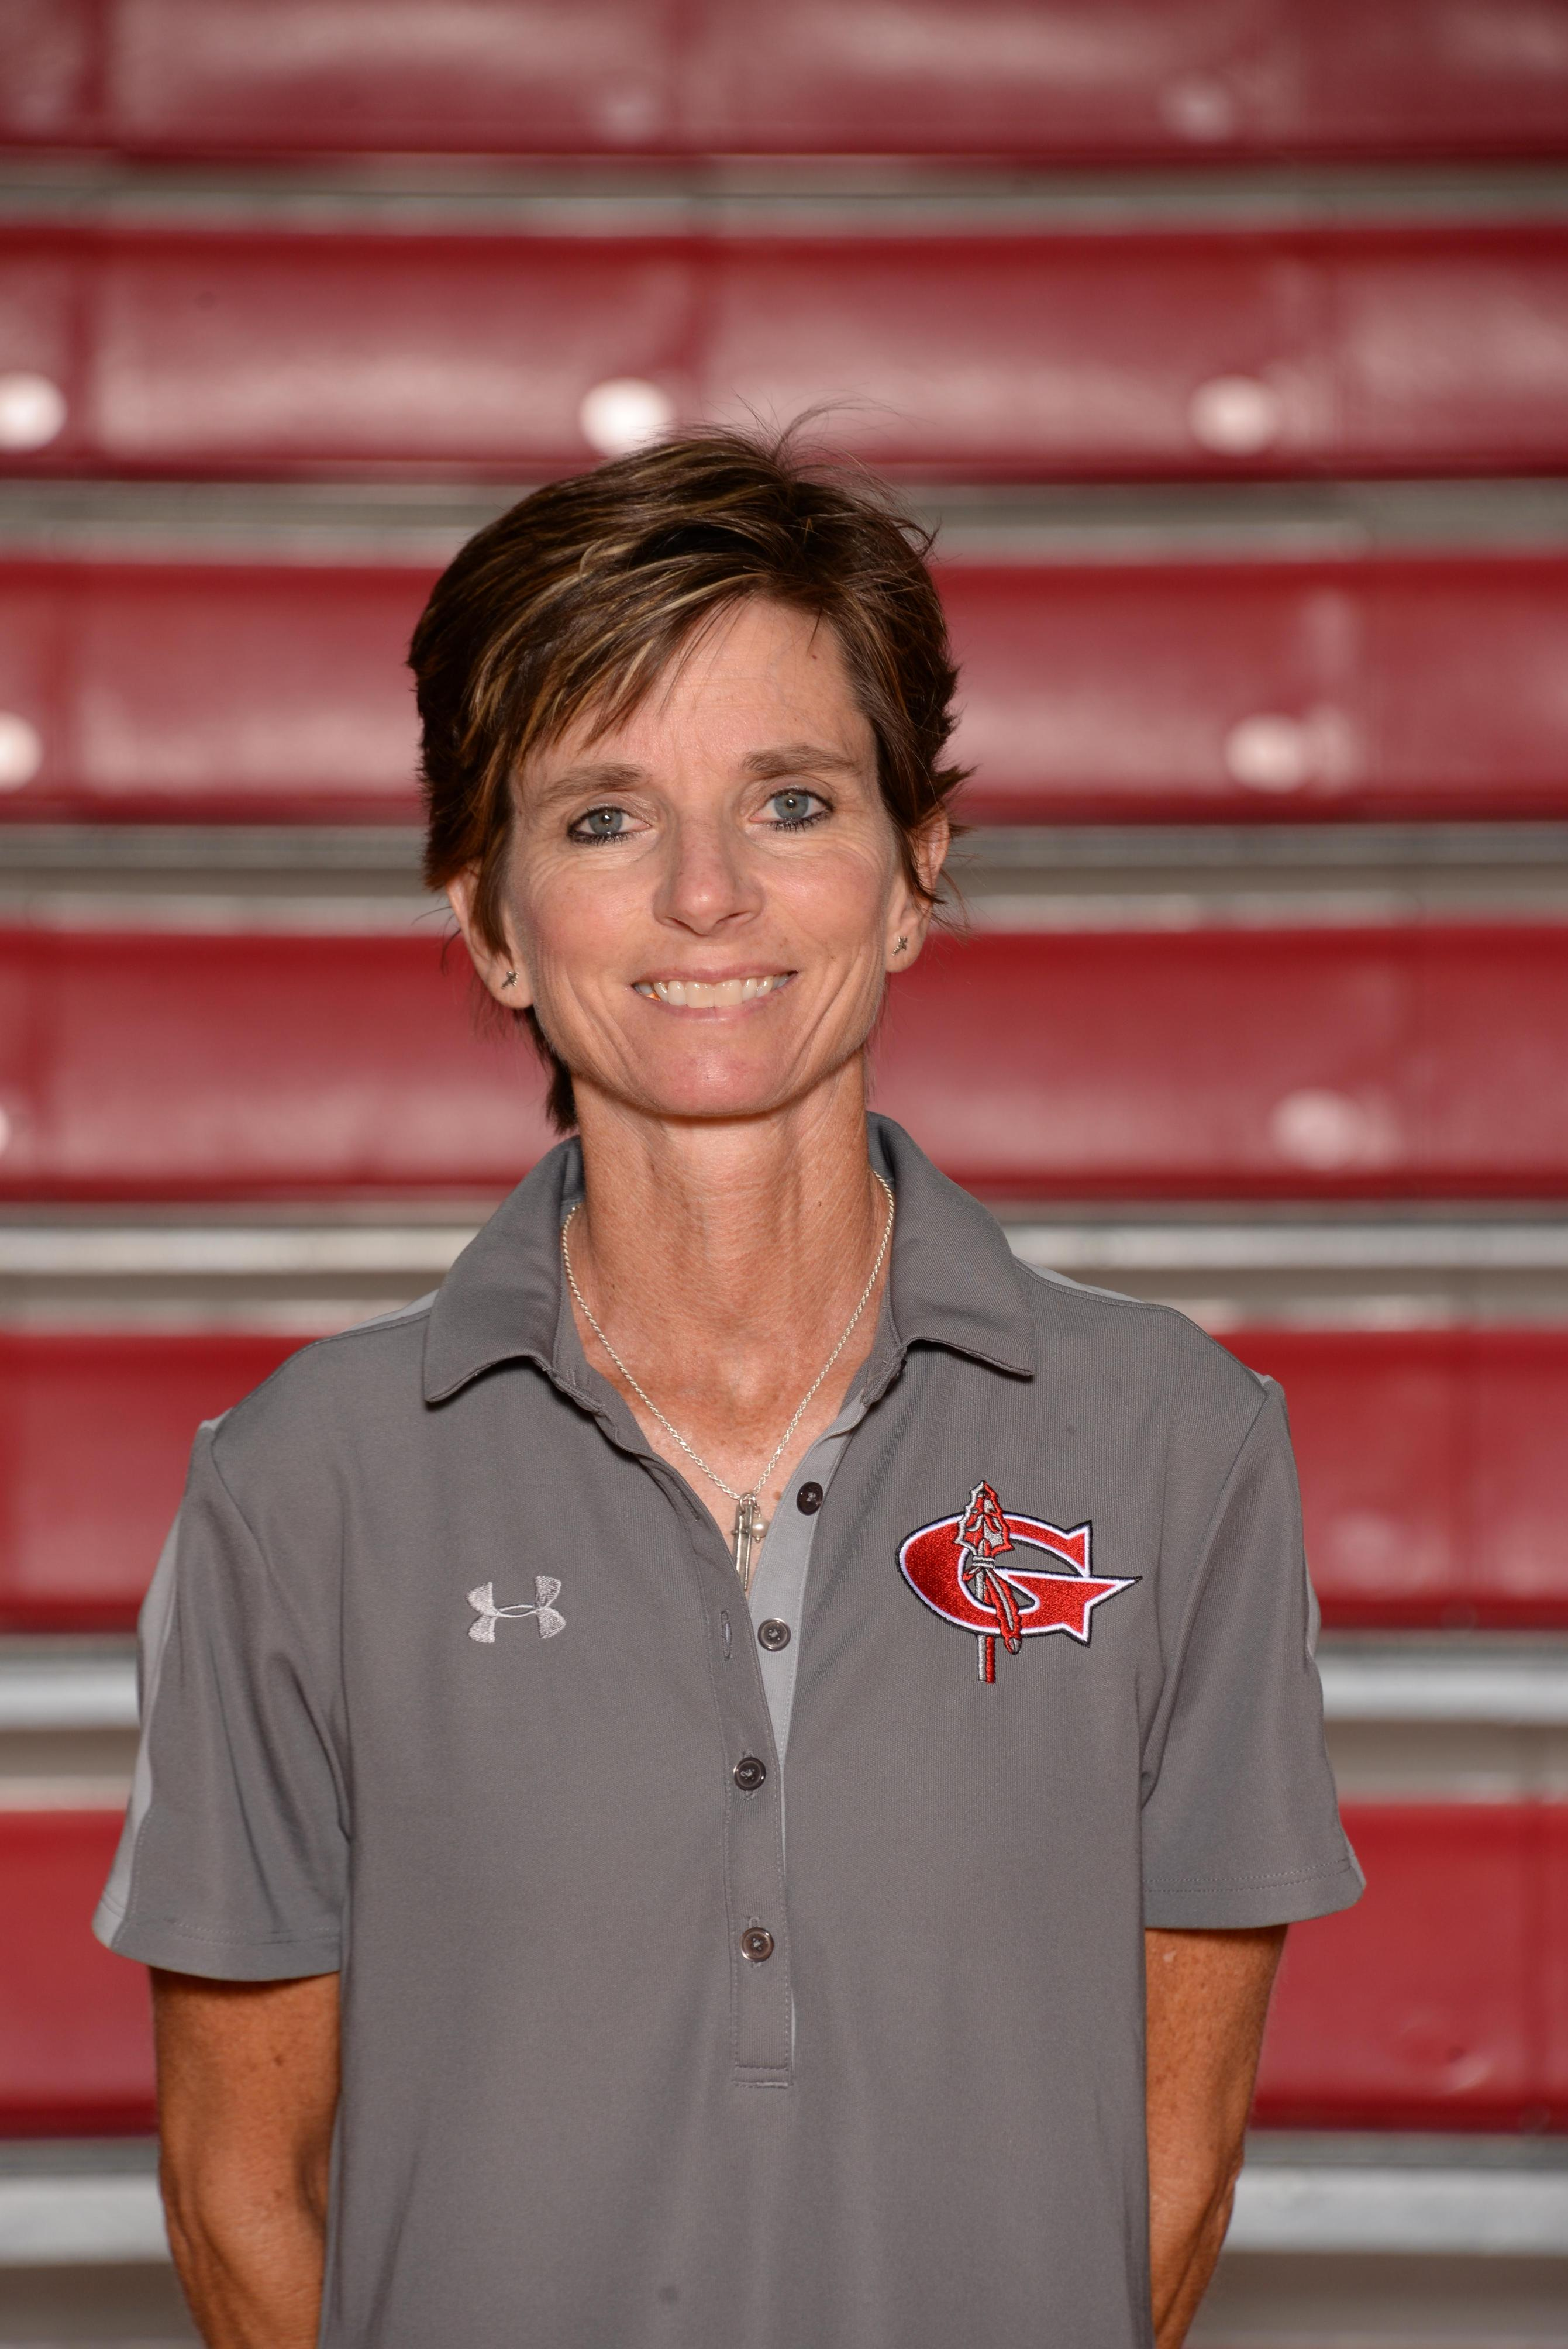 Coach Lisa Smith